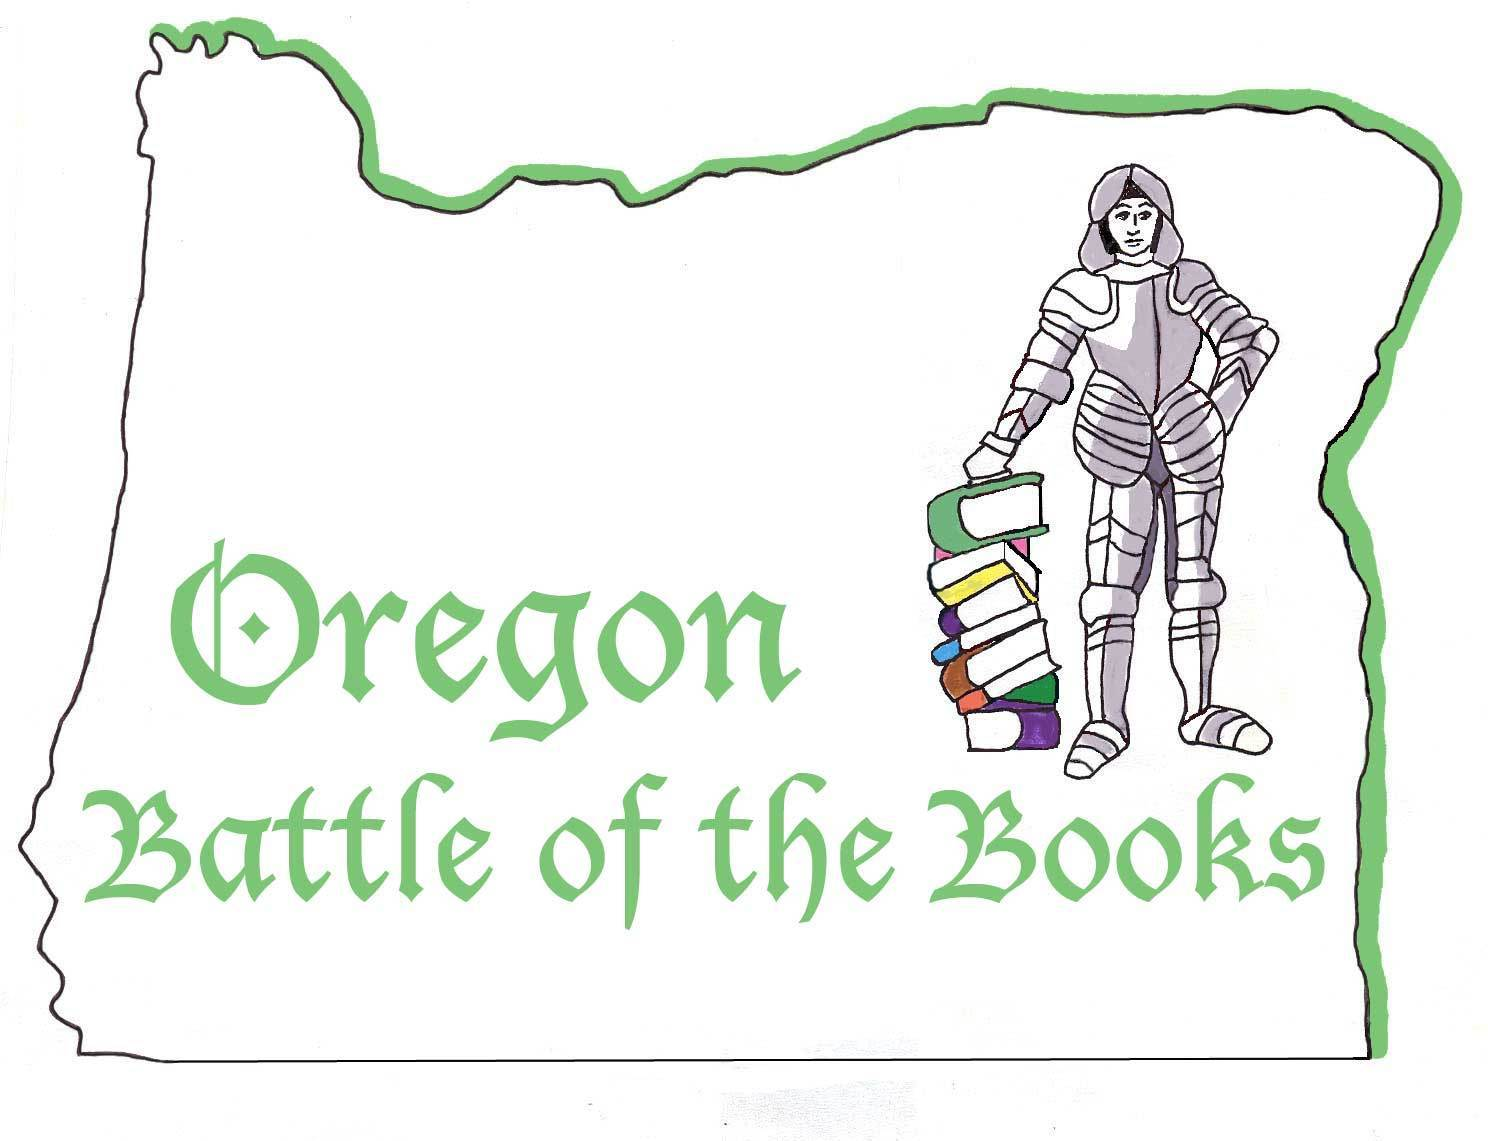 Image result for oregon battle of the books